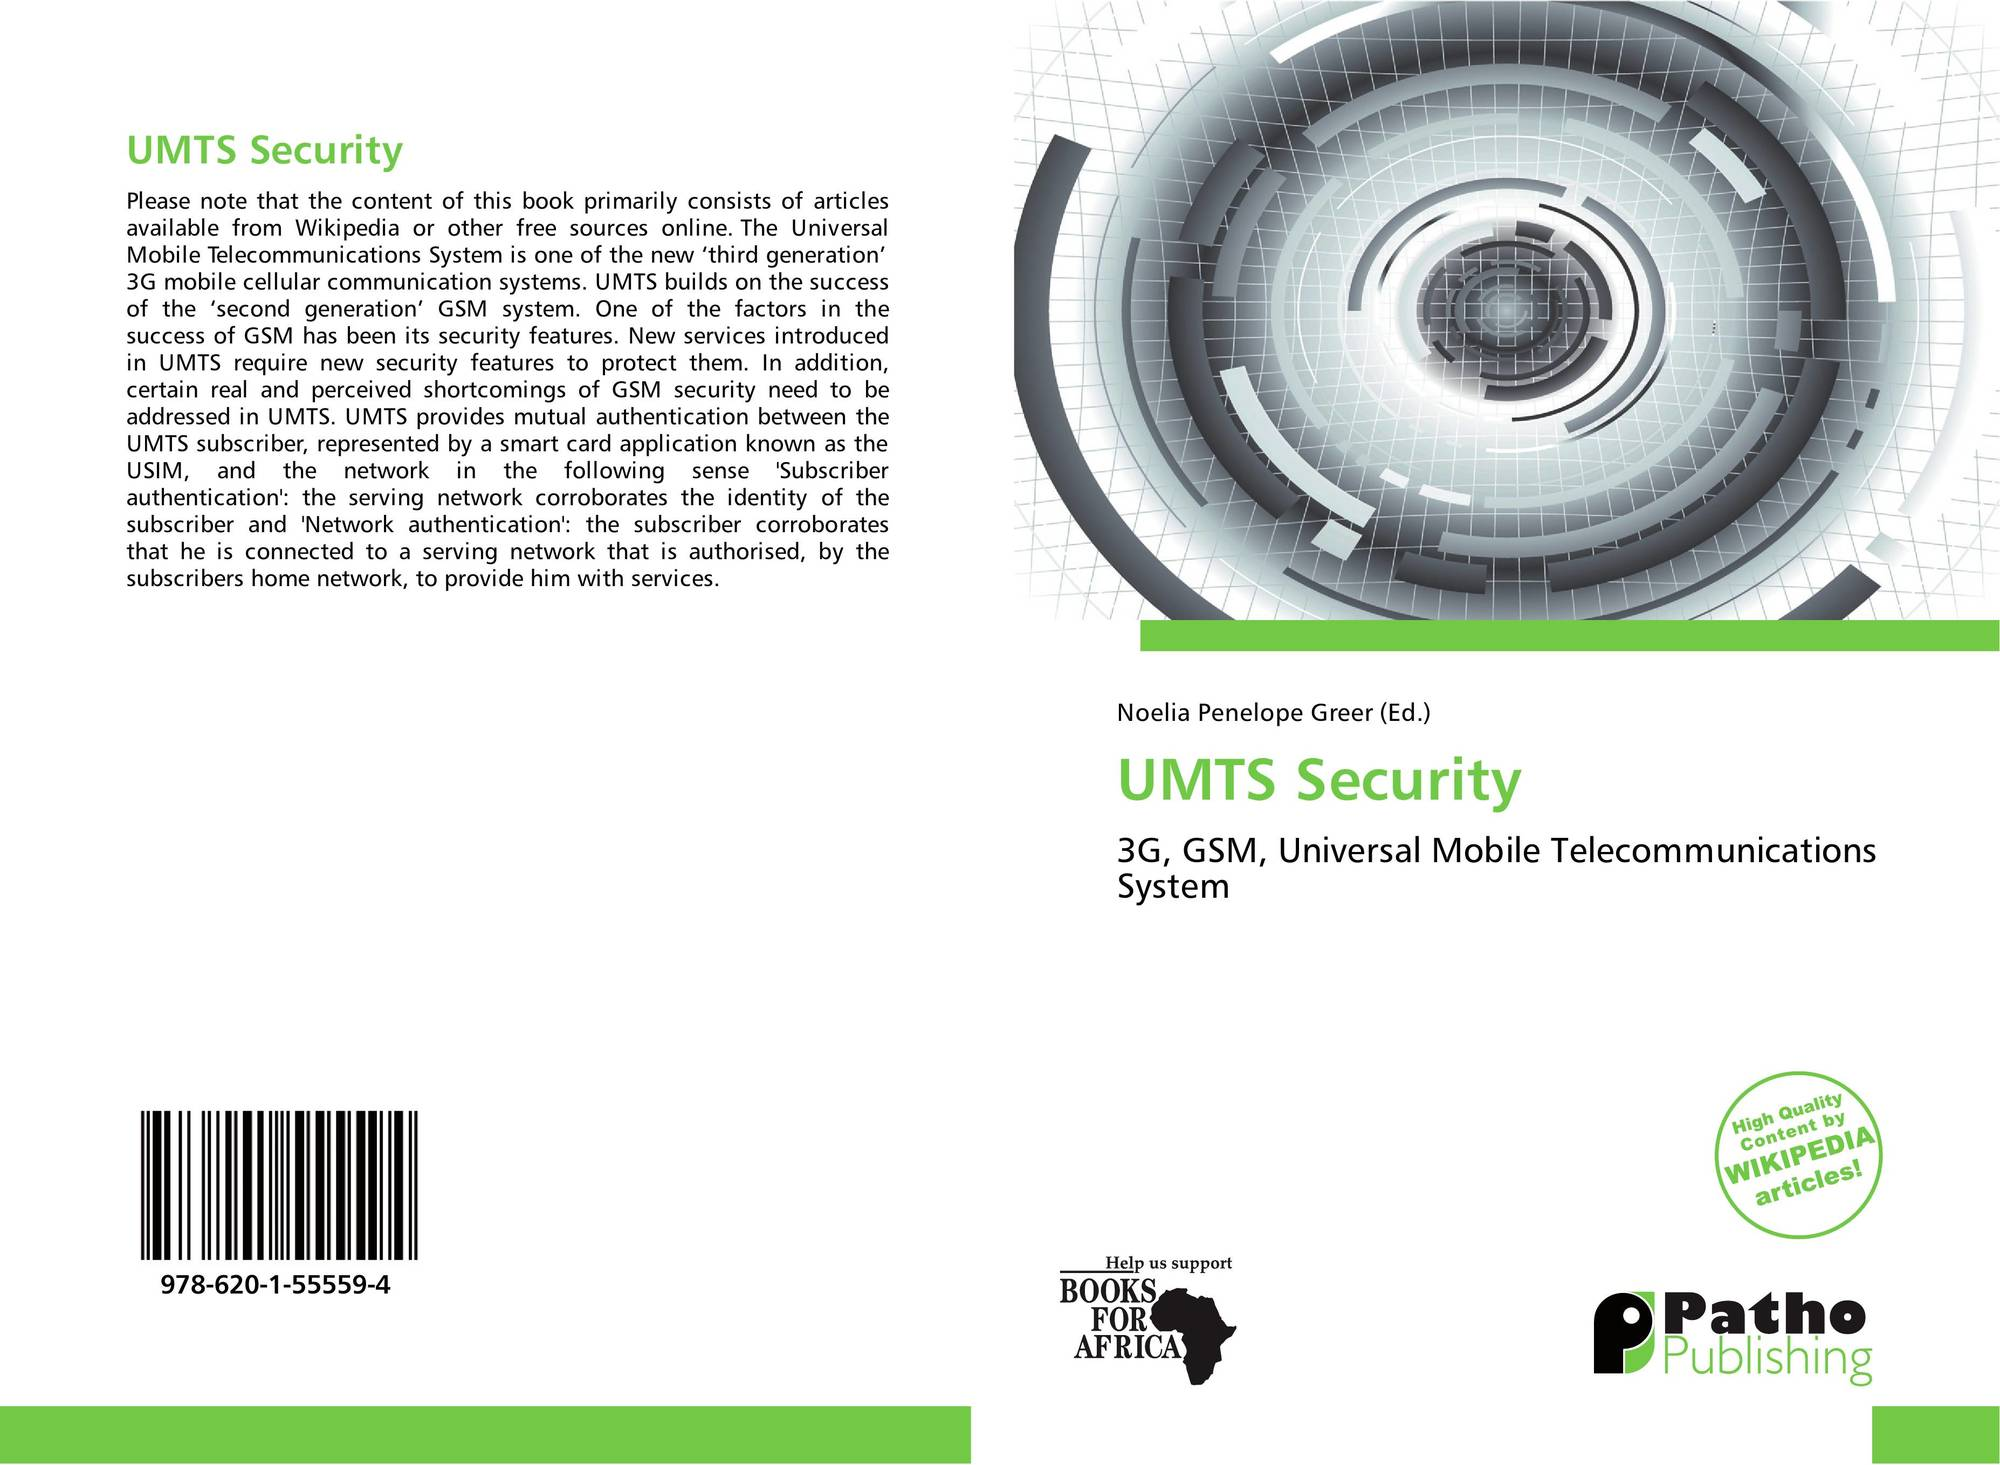 UMTS Security, 978-620-1-55559-4, 6201555595 ,9786201555594